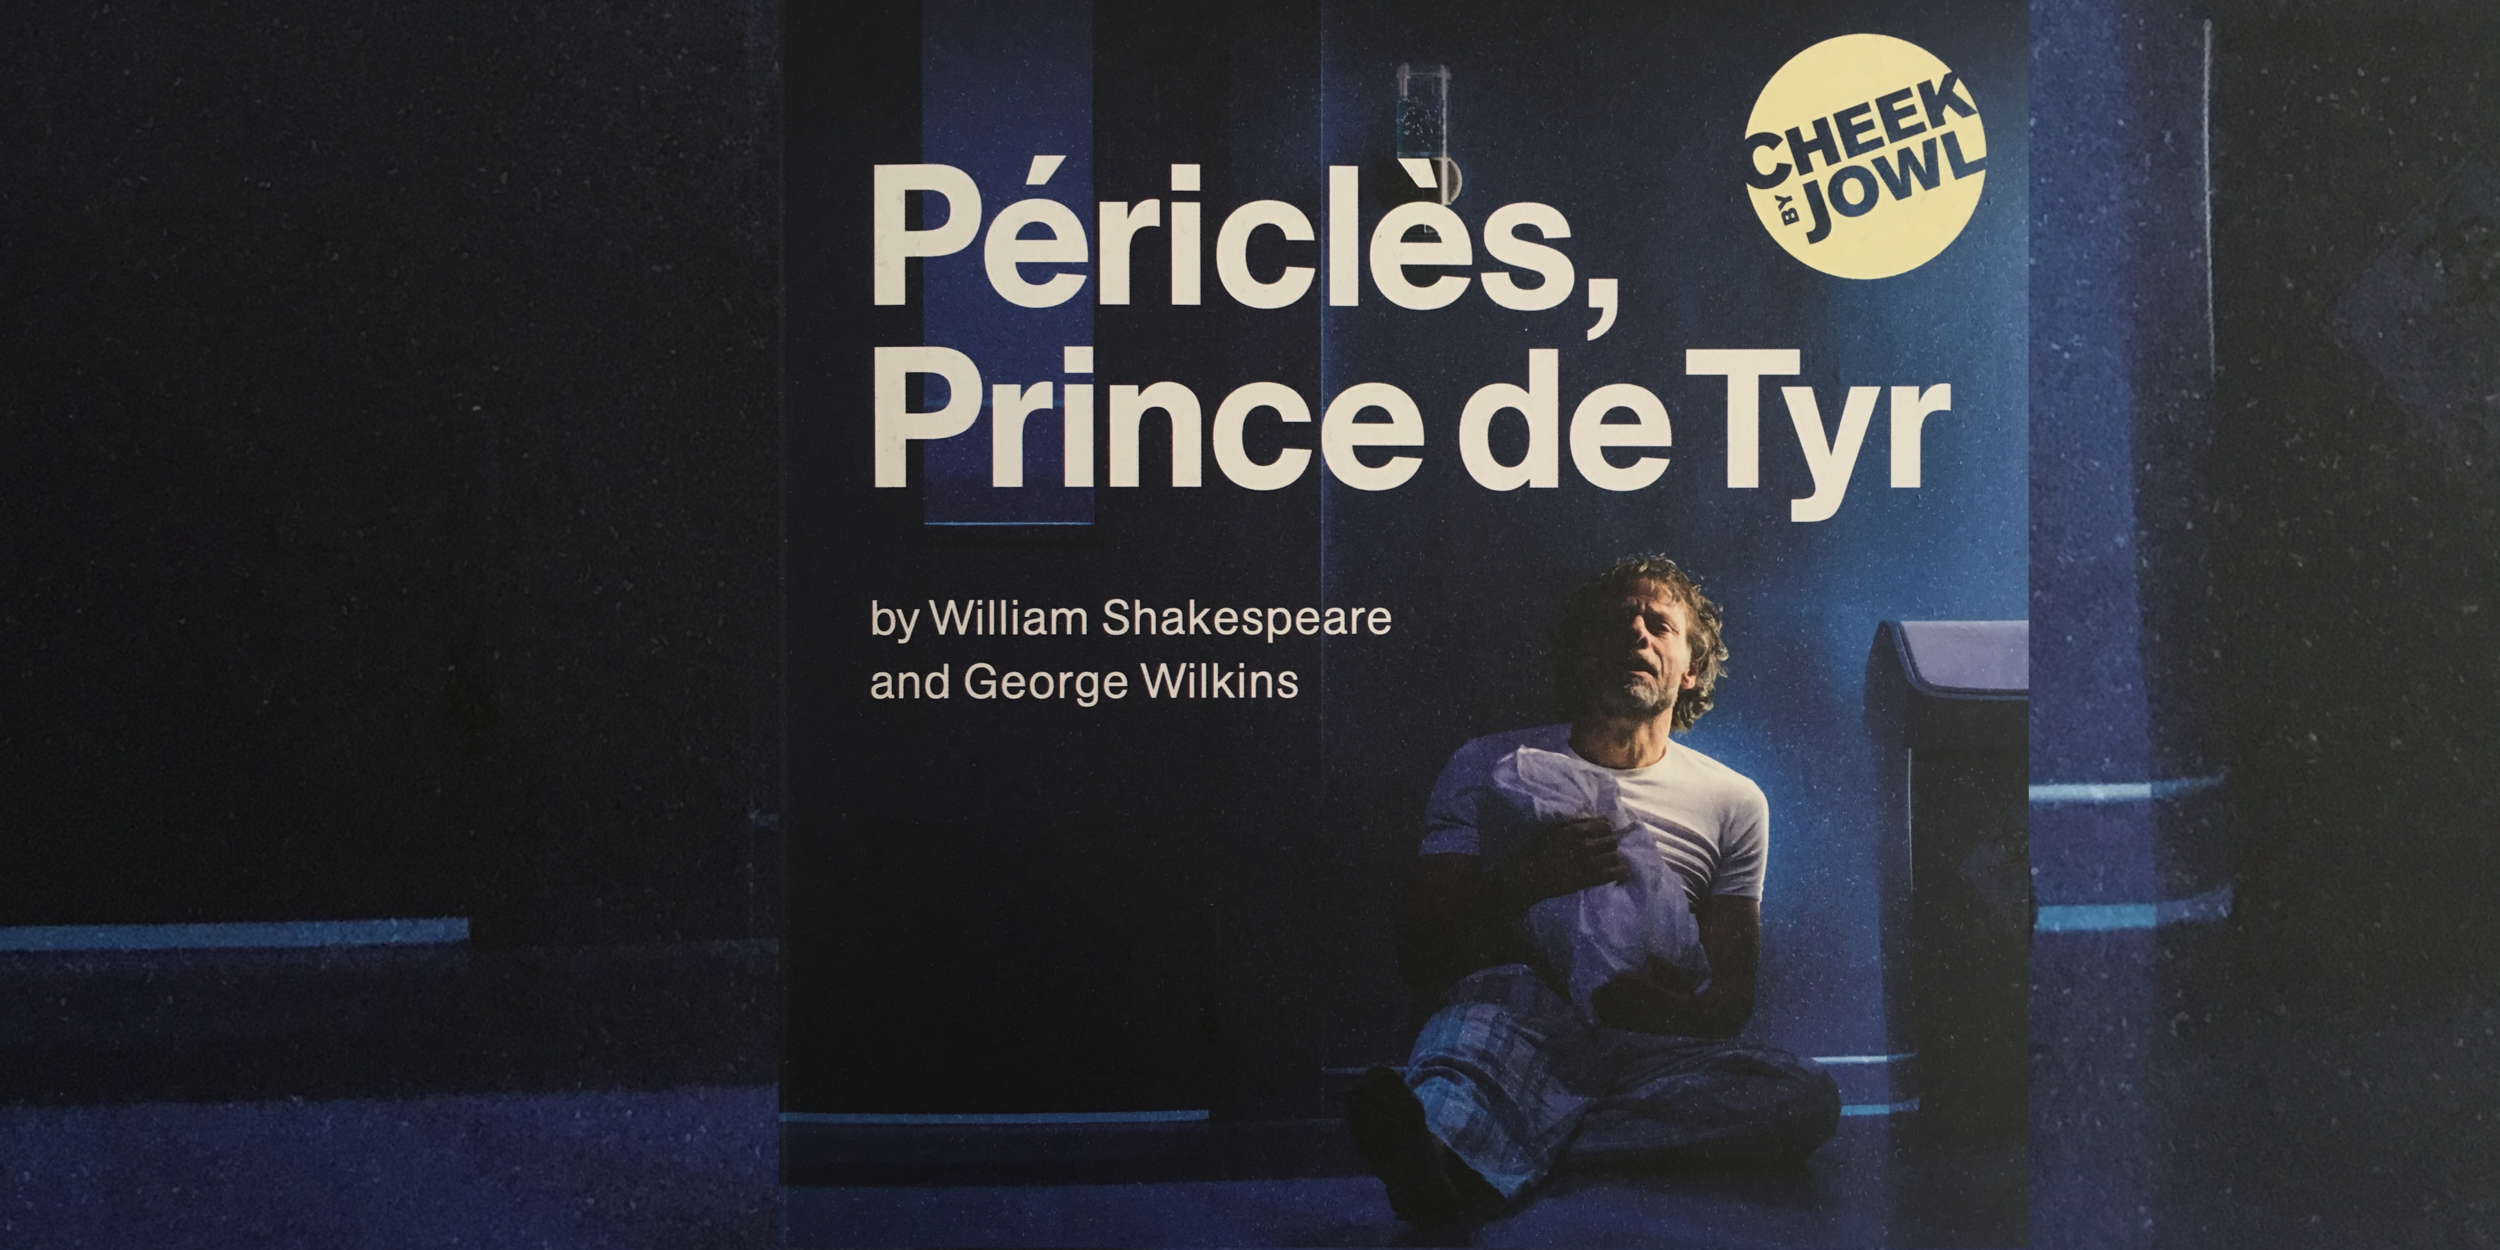 © Cheek By Jowl,  Périclès, Cheek By Jowl  [programme image used to create banner image]